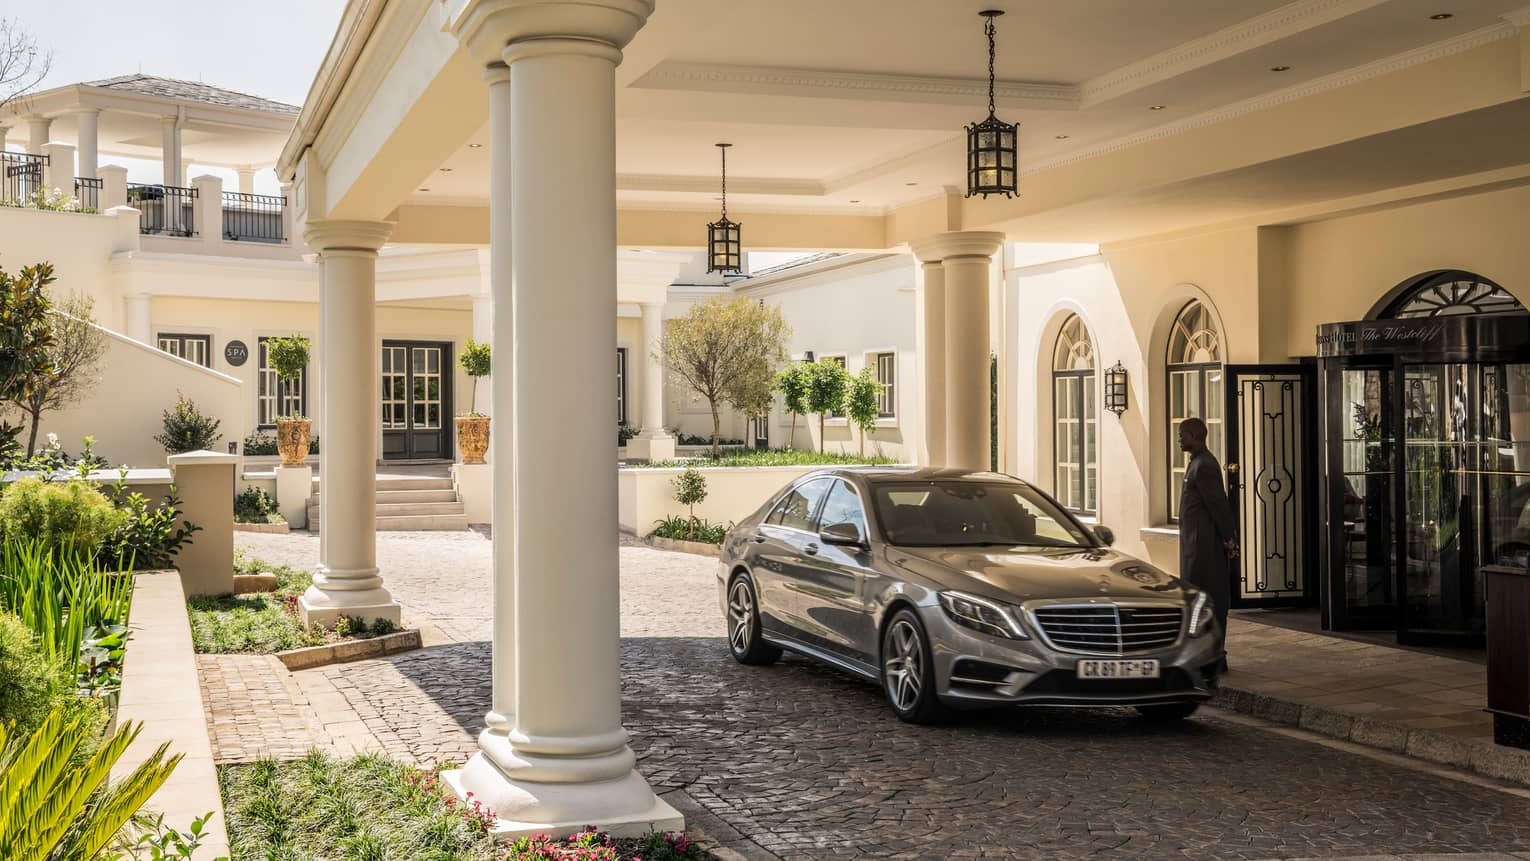 Man greets luxury car under white pillars at front entrance to Four Seasons Hotel The Westcliff, Johannesburg